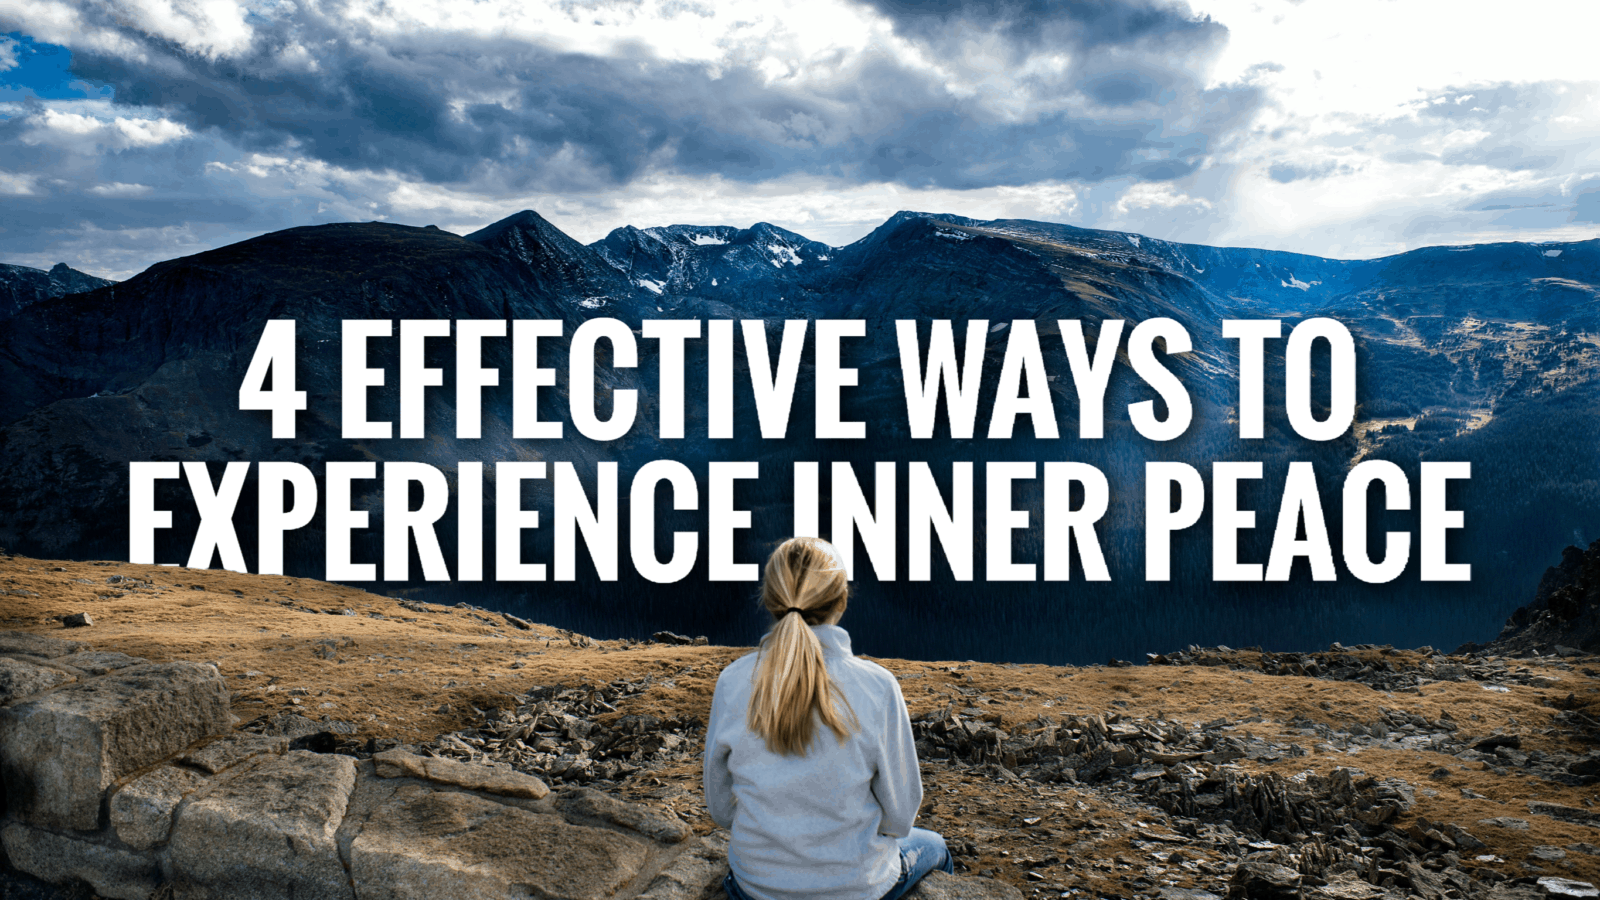 experience inner peace